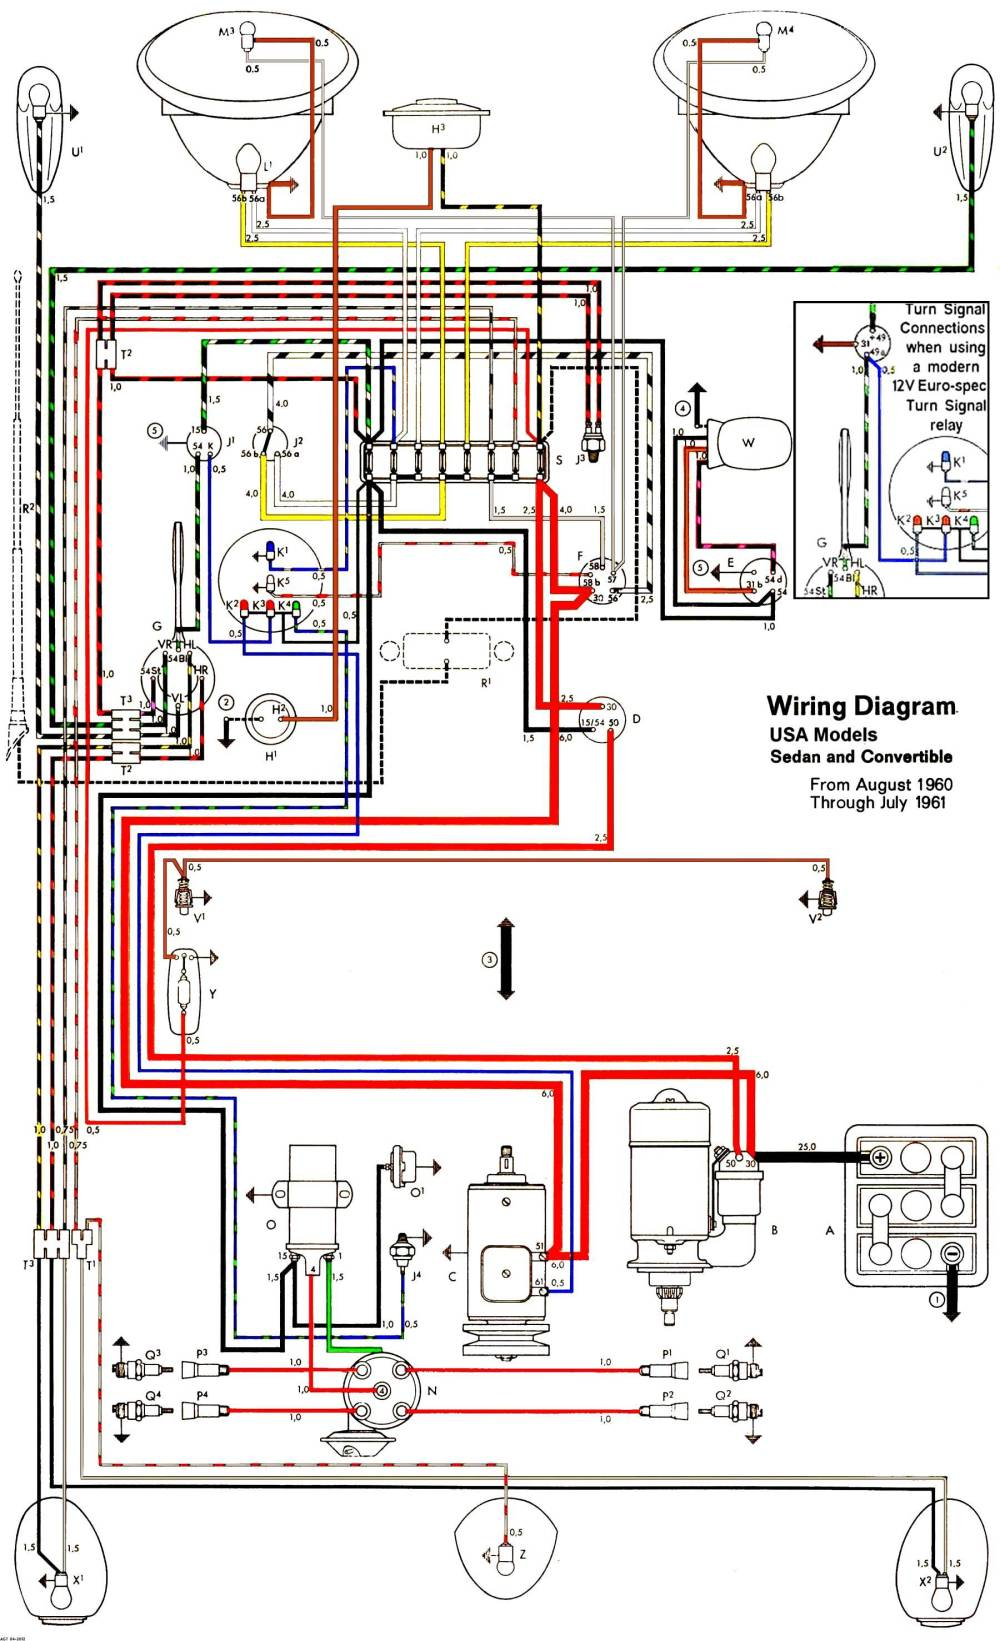 medium resolution of 1970 vw engine diagram wiring diagram origin 2004 vw beetle convertible wiring diagram 2004 vw beetle wiring diagram